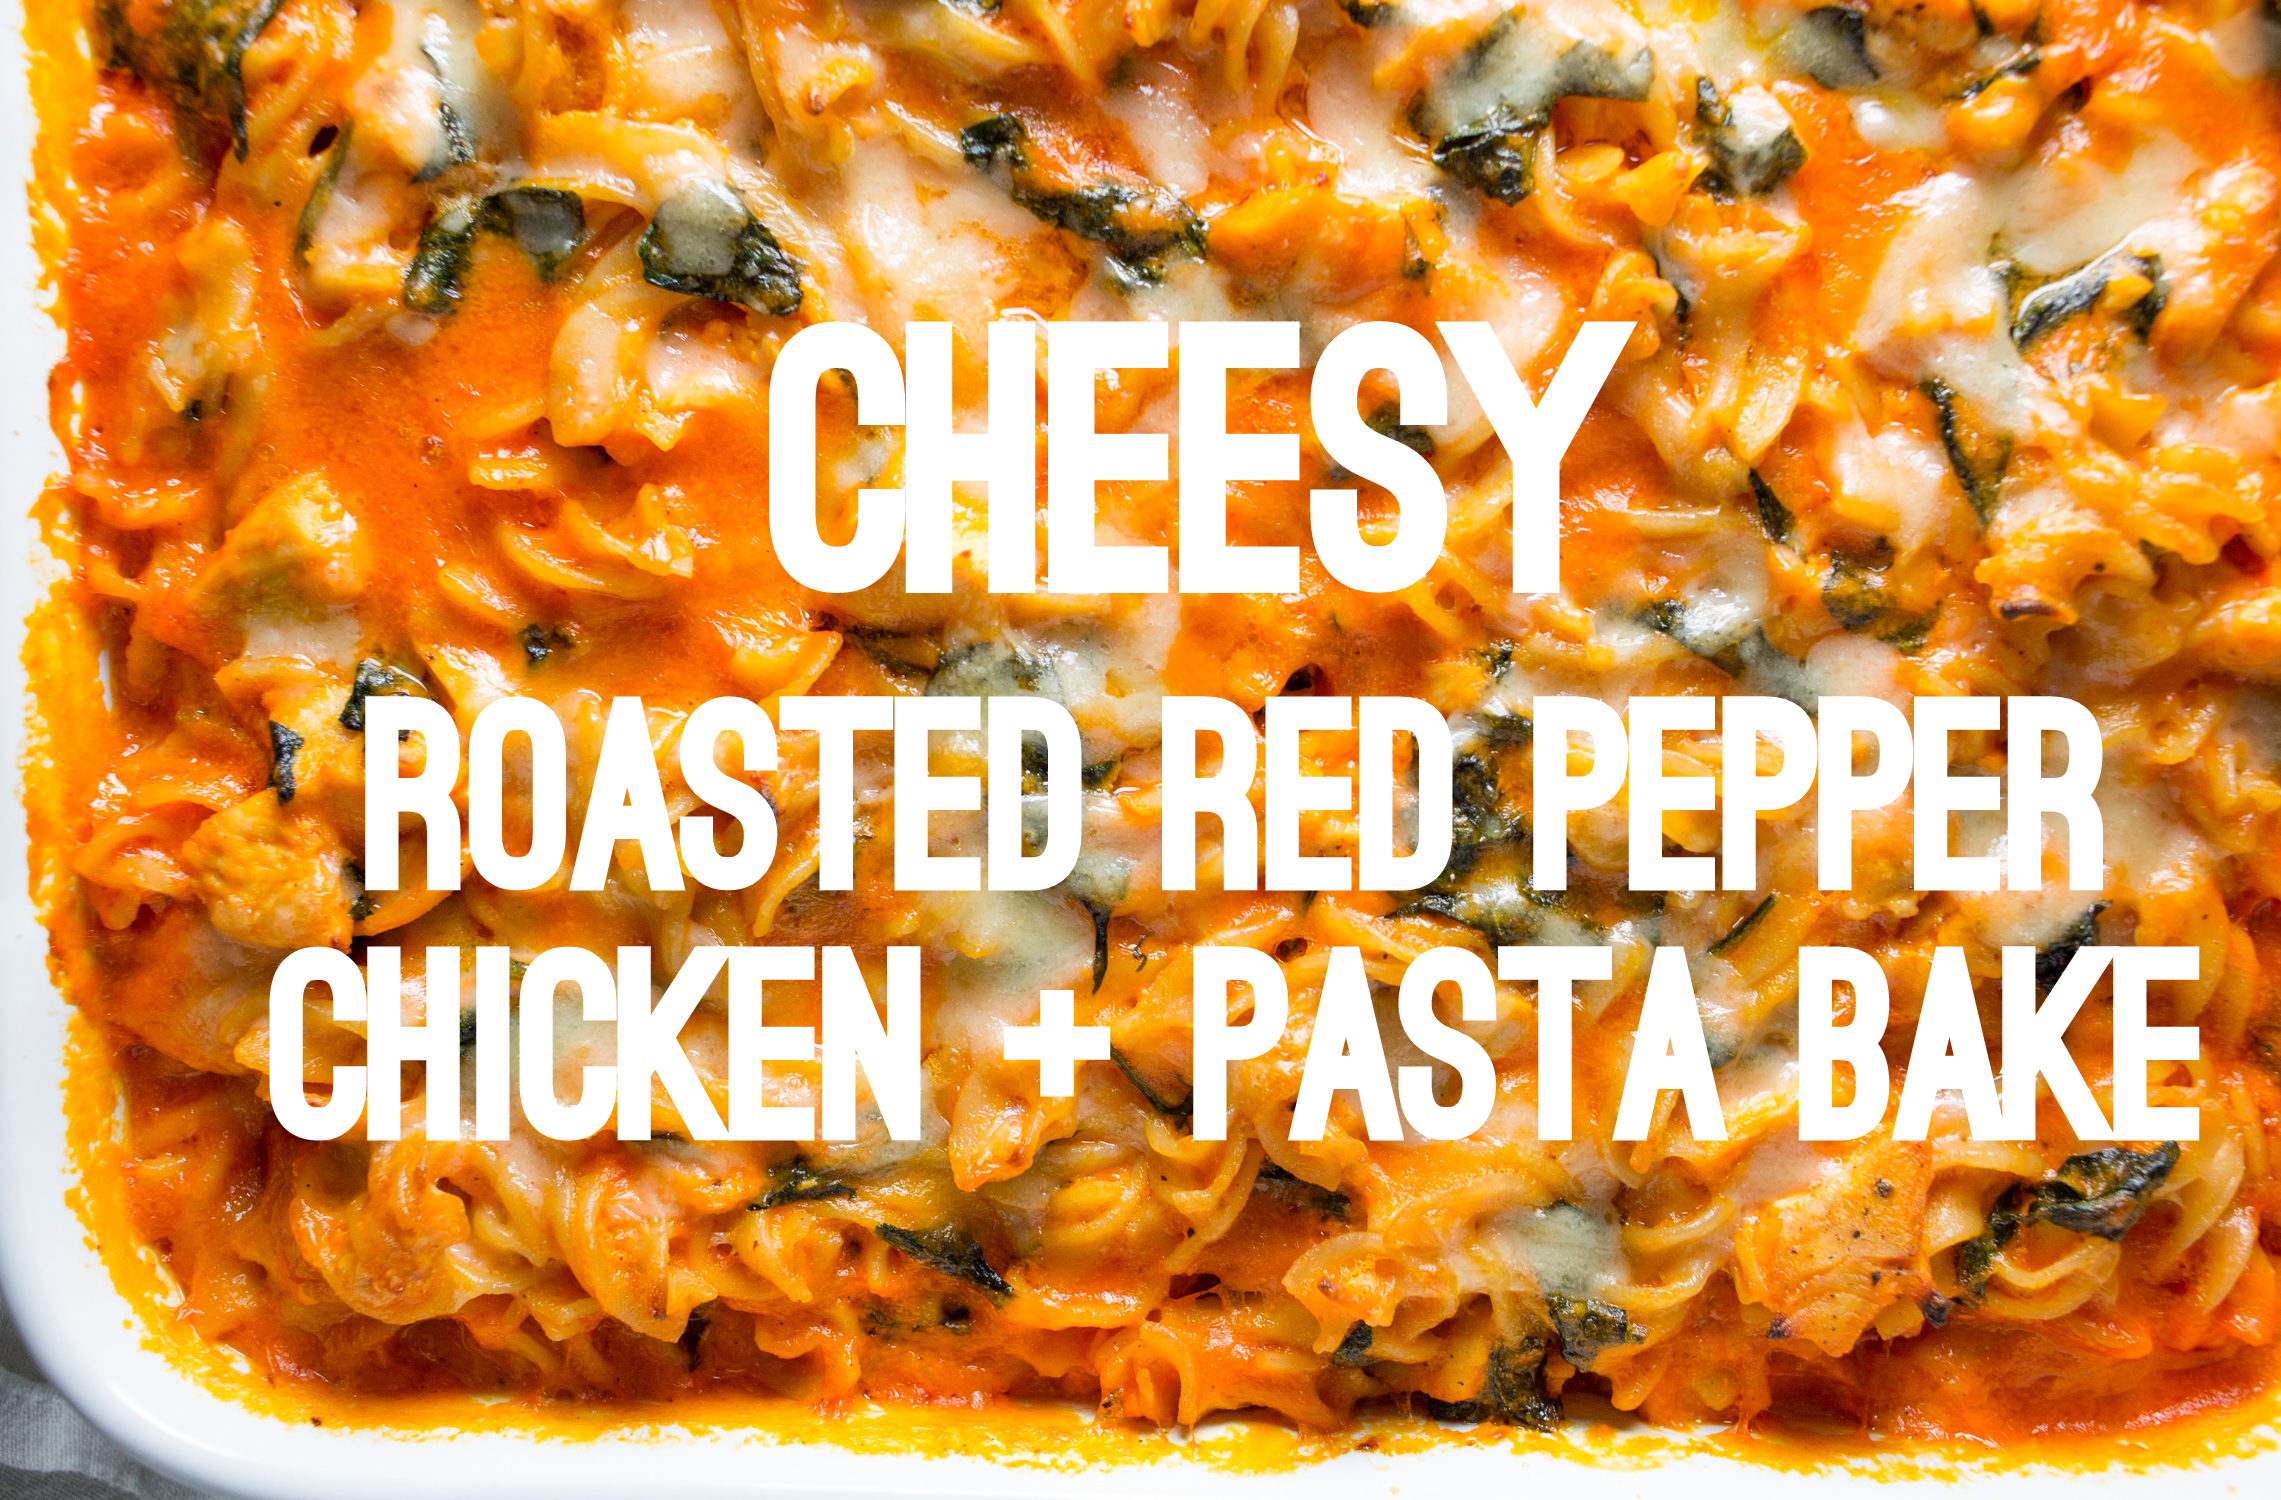 Cheesy roasted red pepper chicken pasta bake punctuated with food cheesy roasted red pepper chicken pasta bake punctuated with food ccuart Gallery